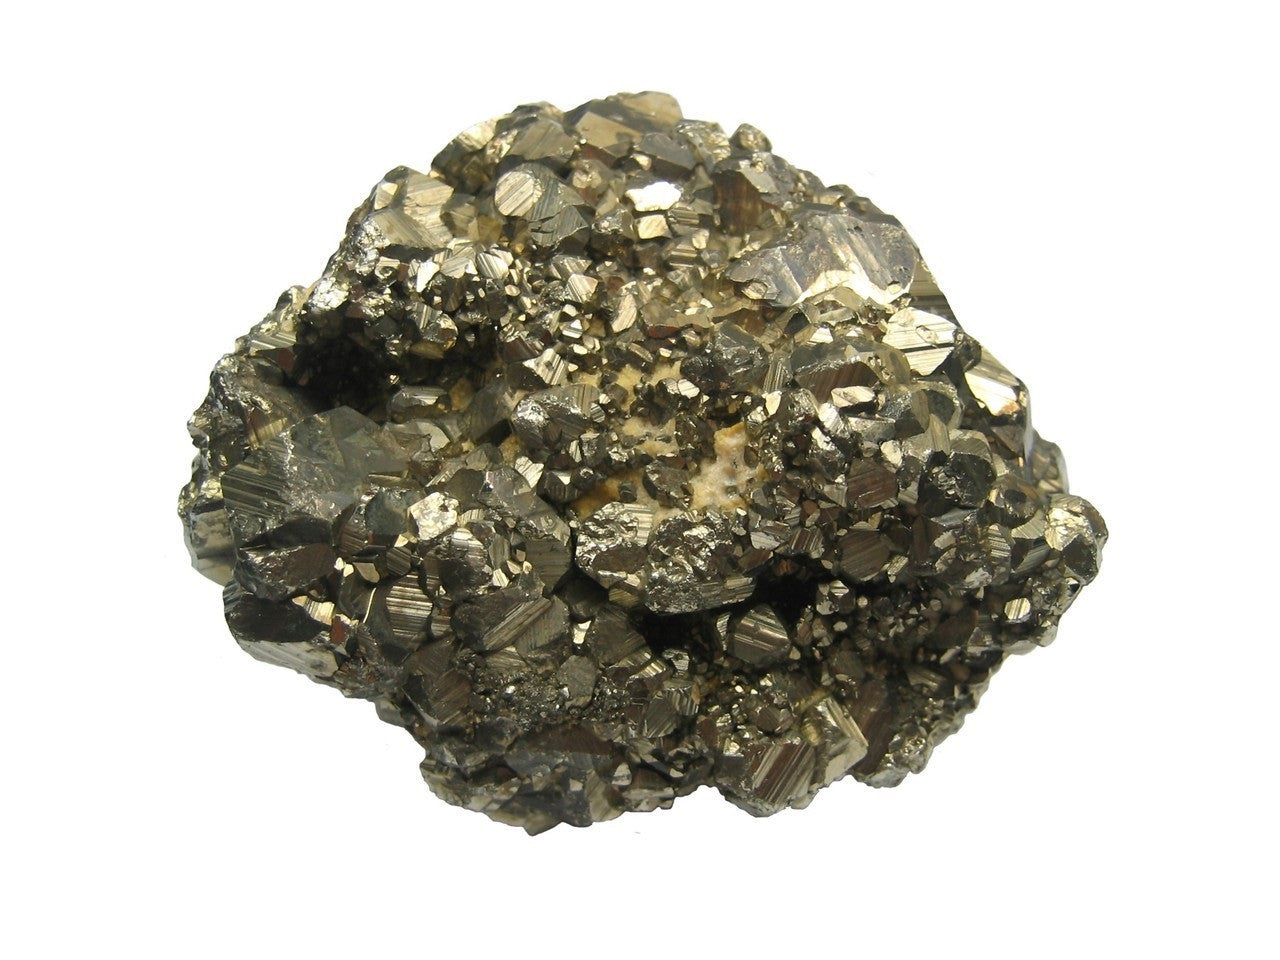 Fool's Gold Specimen 1.5 - 2 Inches Pyrite Mineral Rock with Info Card - Off The Wall Toys and Gifts